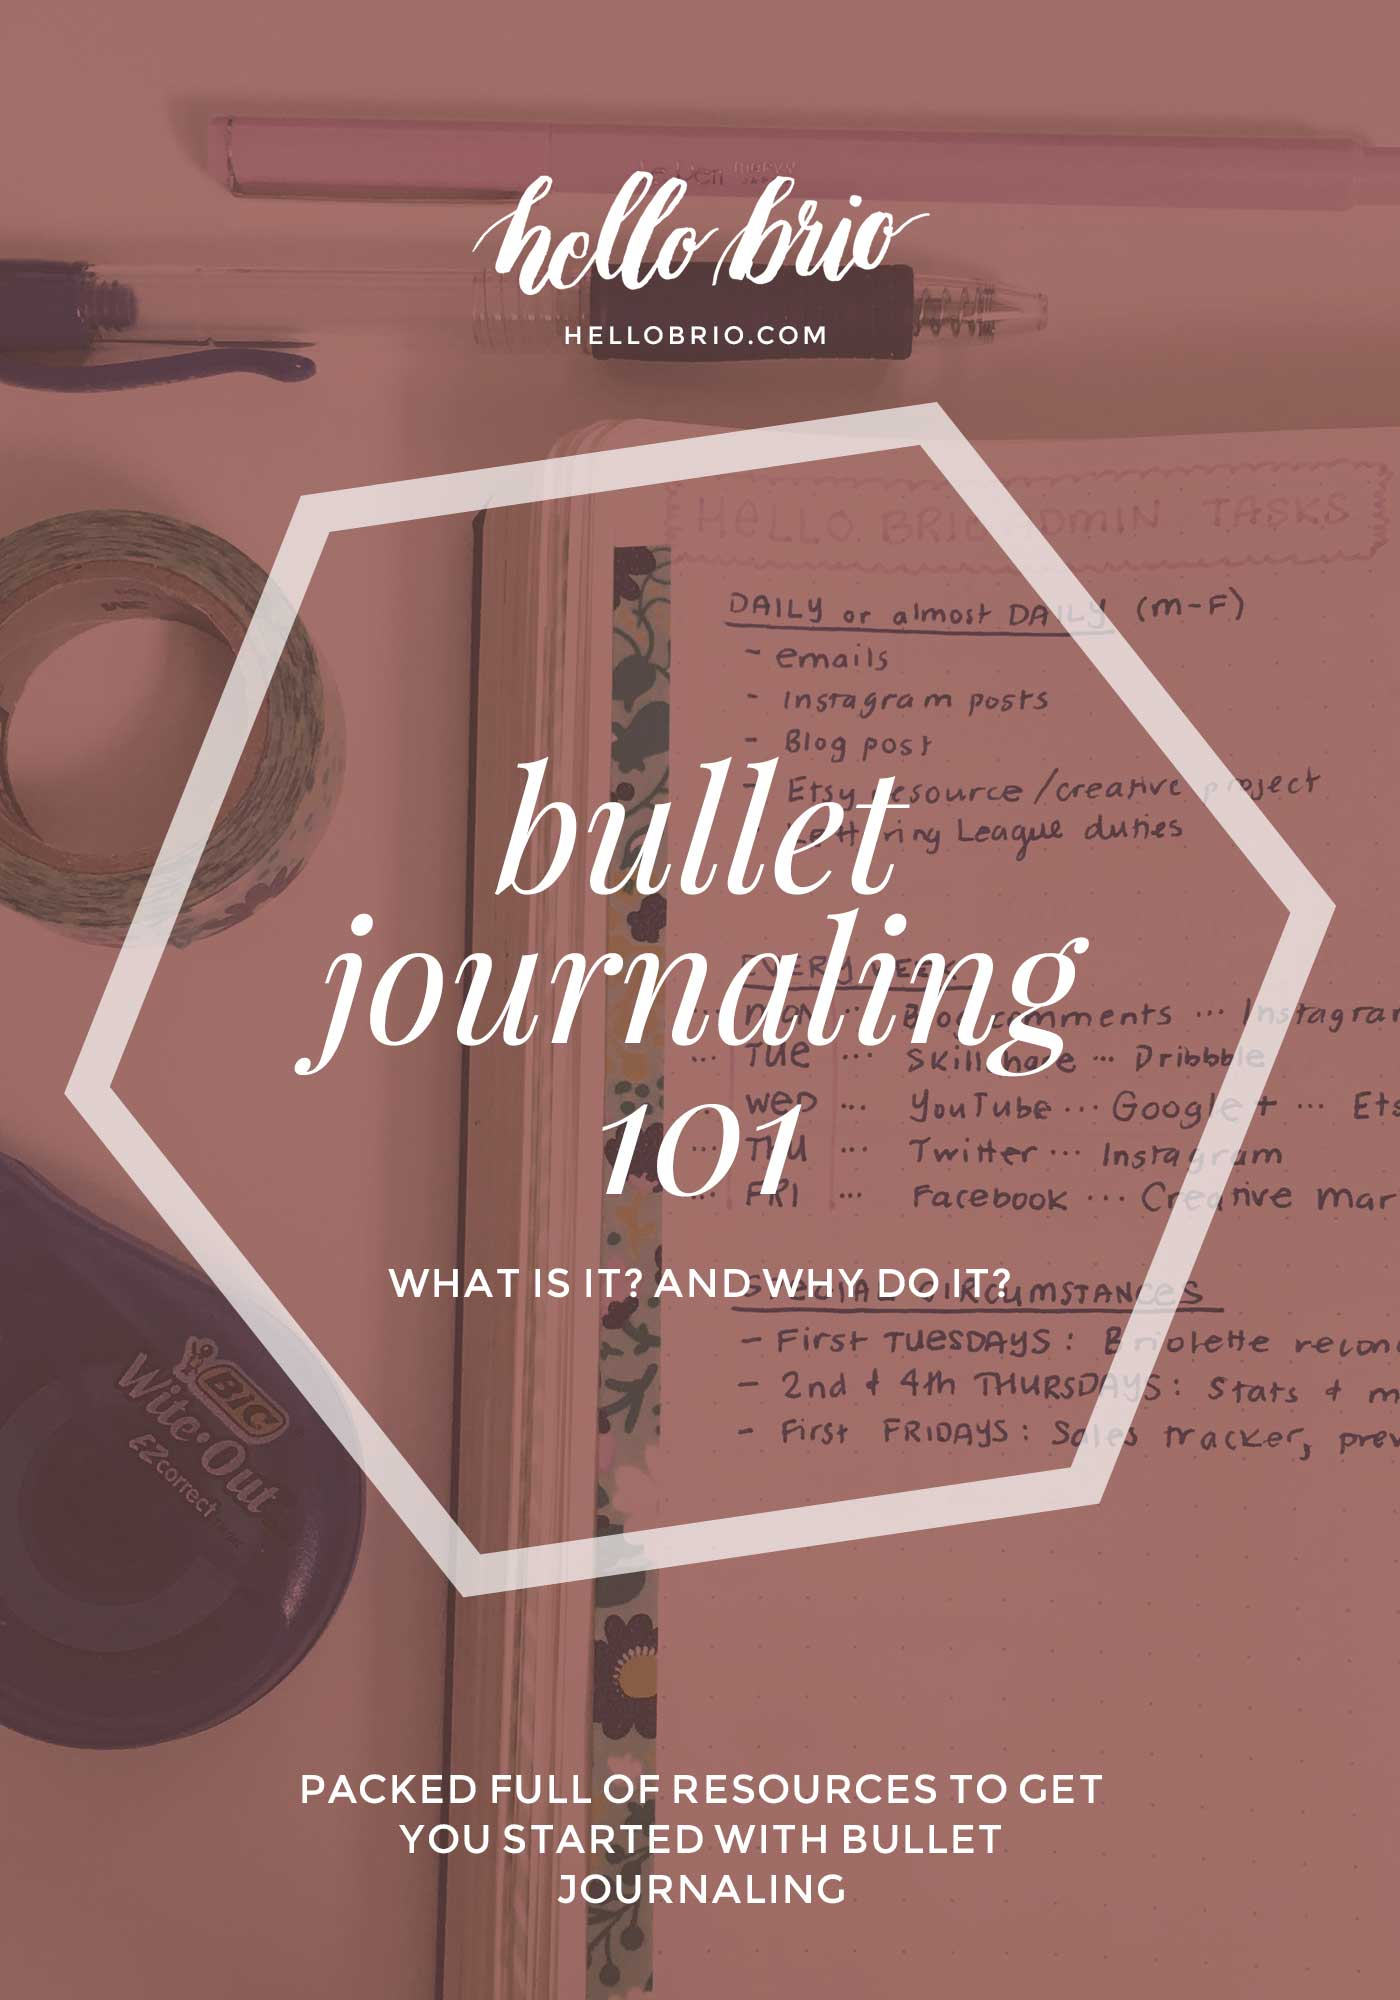 Bullet Journaling 101: What is it, and why do it?